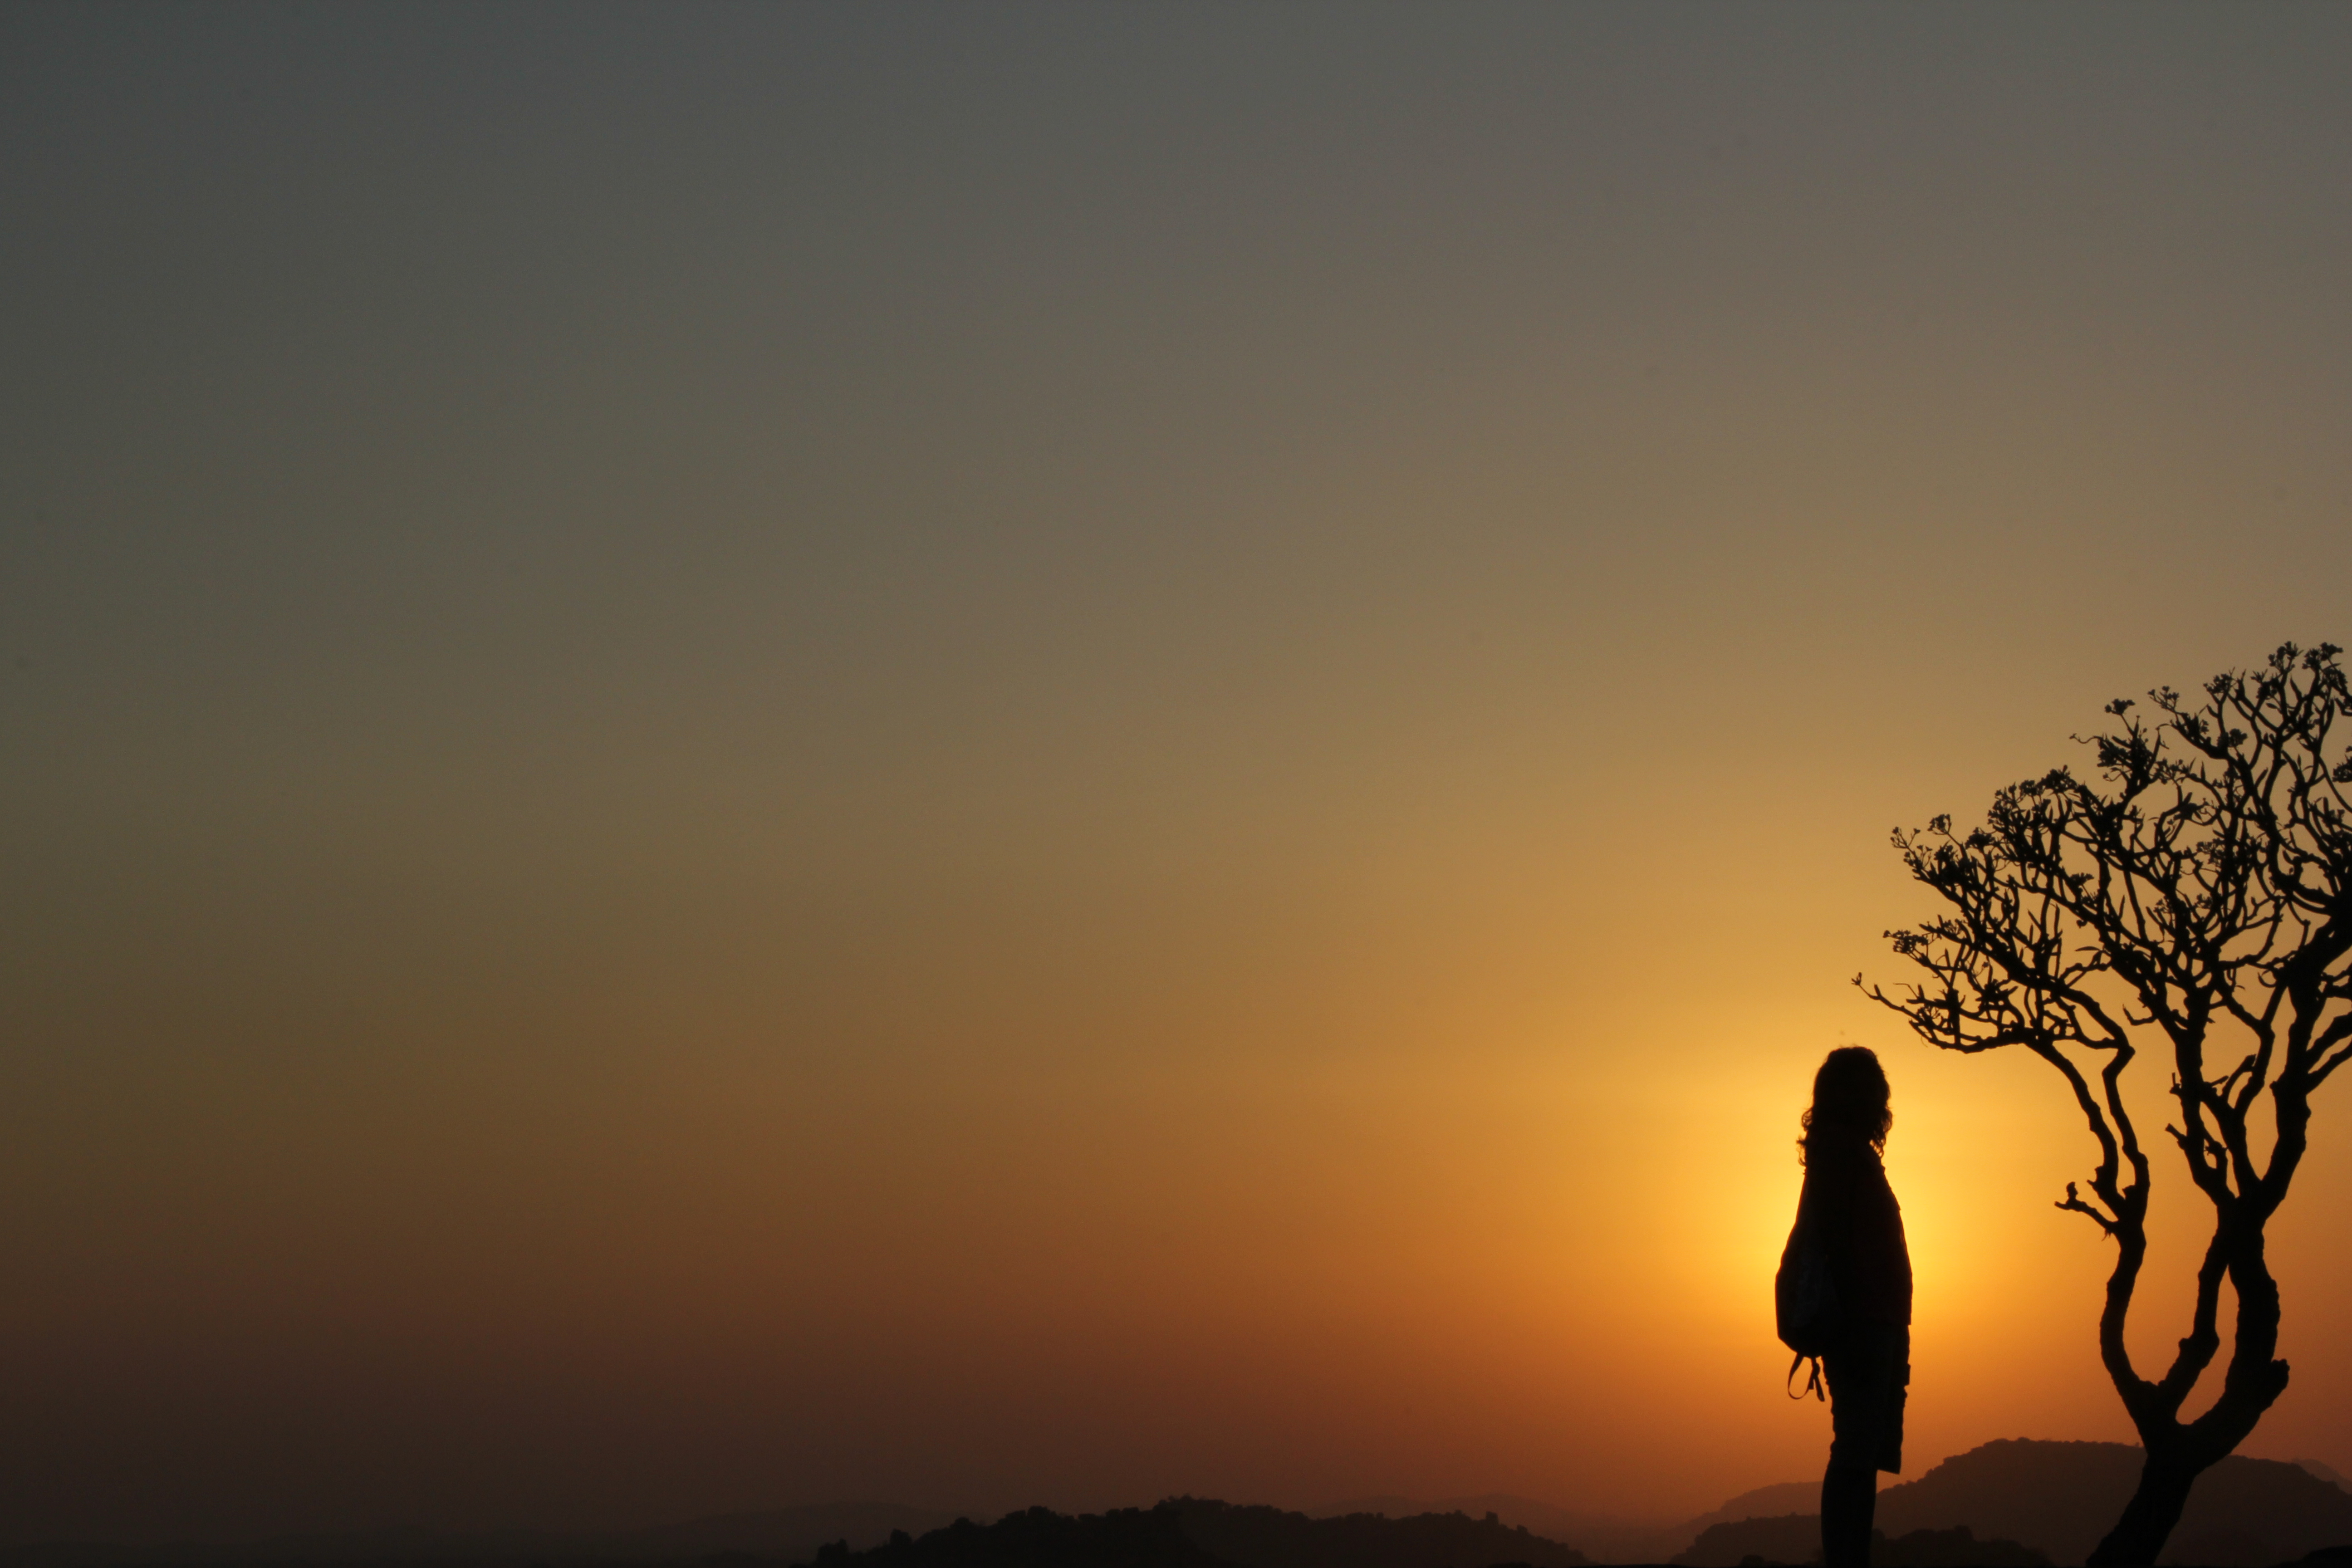 Sunset at Hampi with PErson